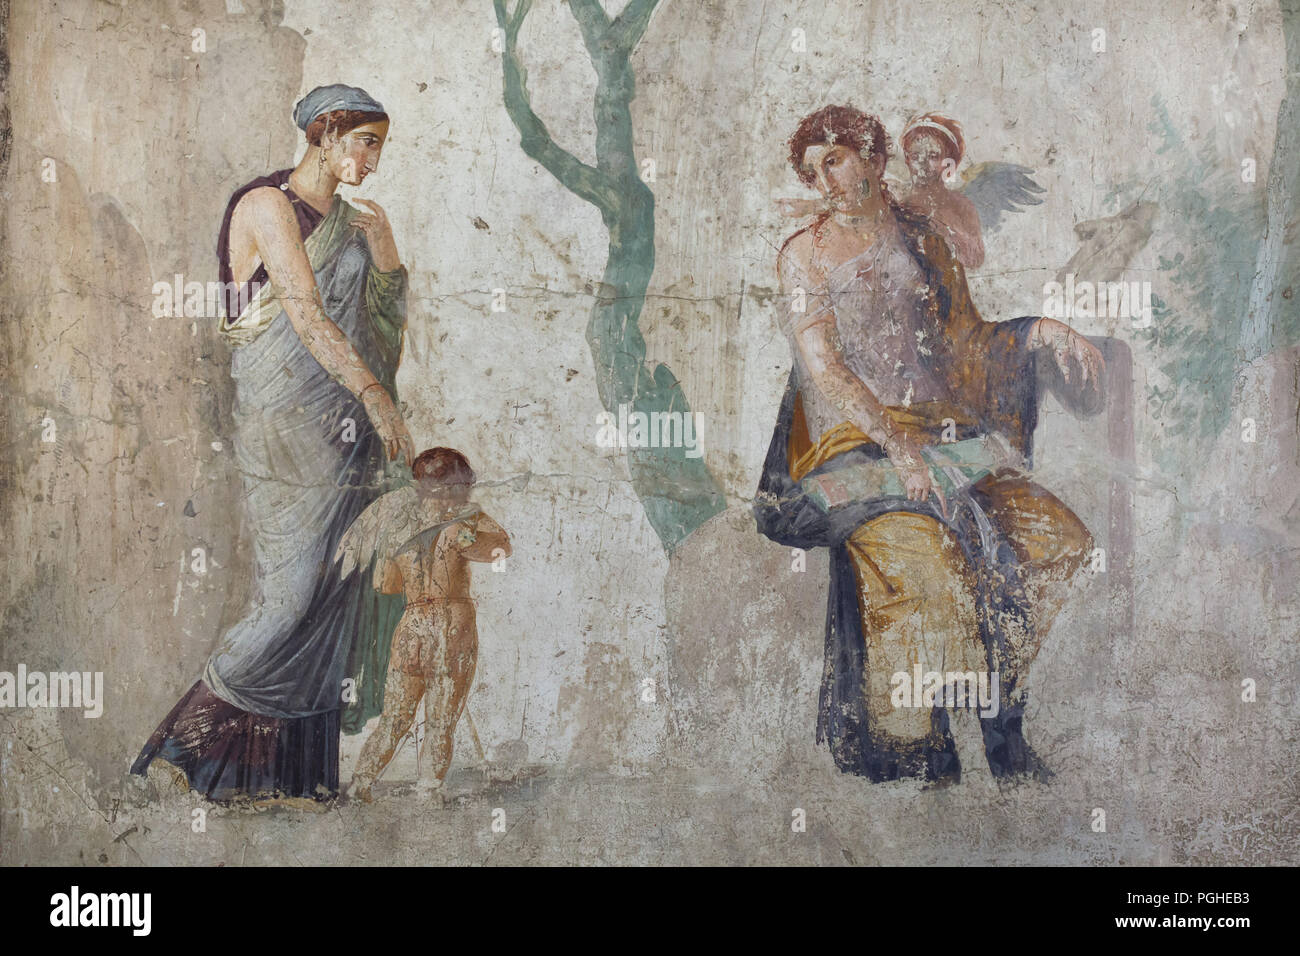 Peitho (left) taking Eros to Venus and Anteros. Roman fresco dated from circa 25 BC on display in the National Archaeological Museum (Museo Archeologico Nazionale di Napoli) in Naples, Campania, Italy. - Stock Image